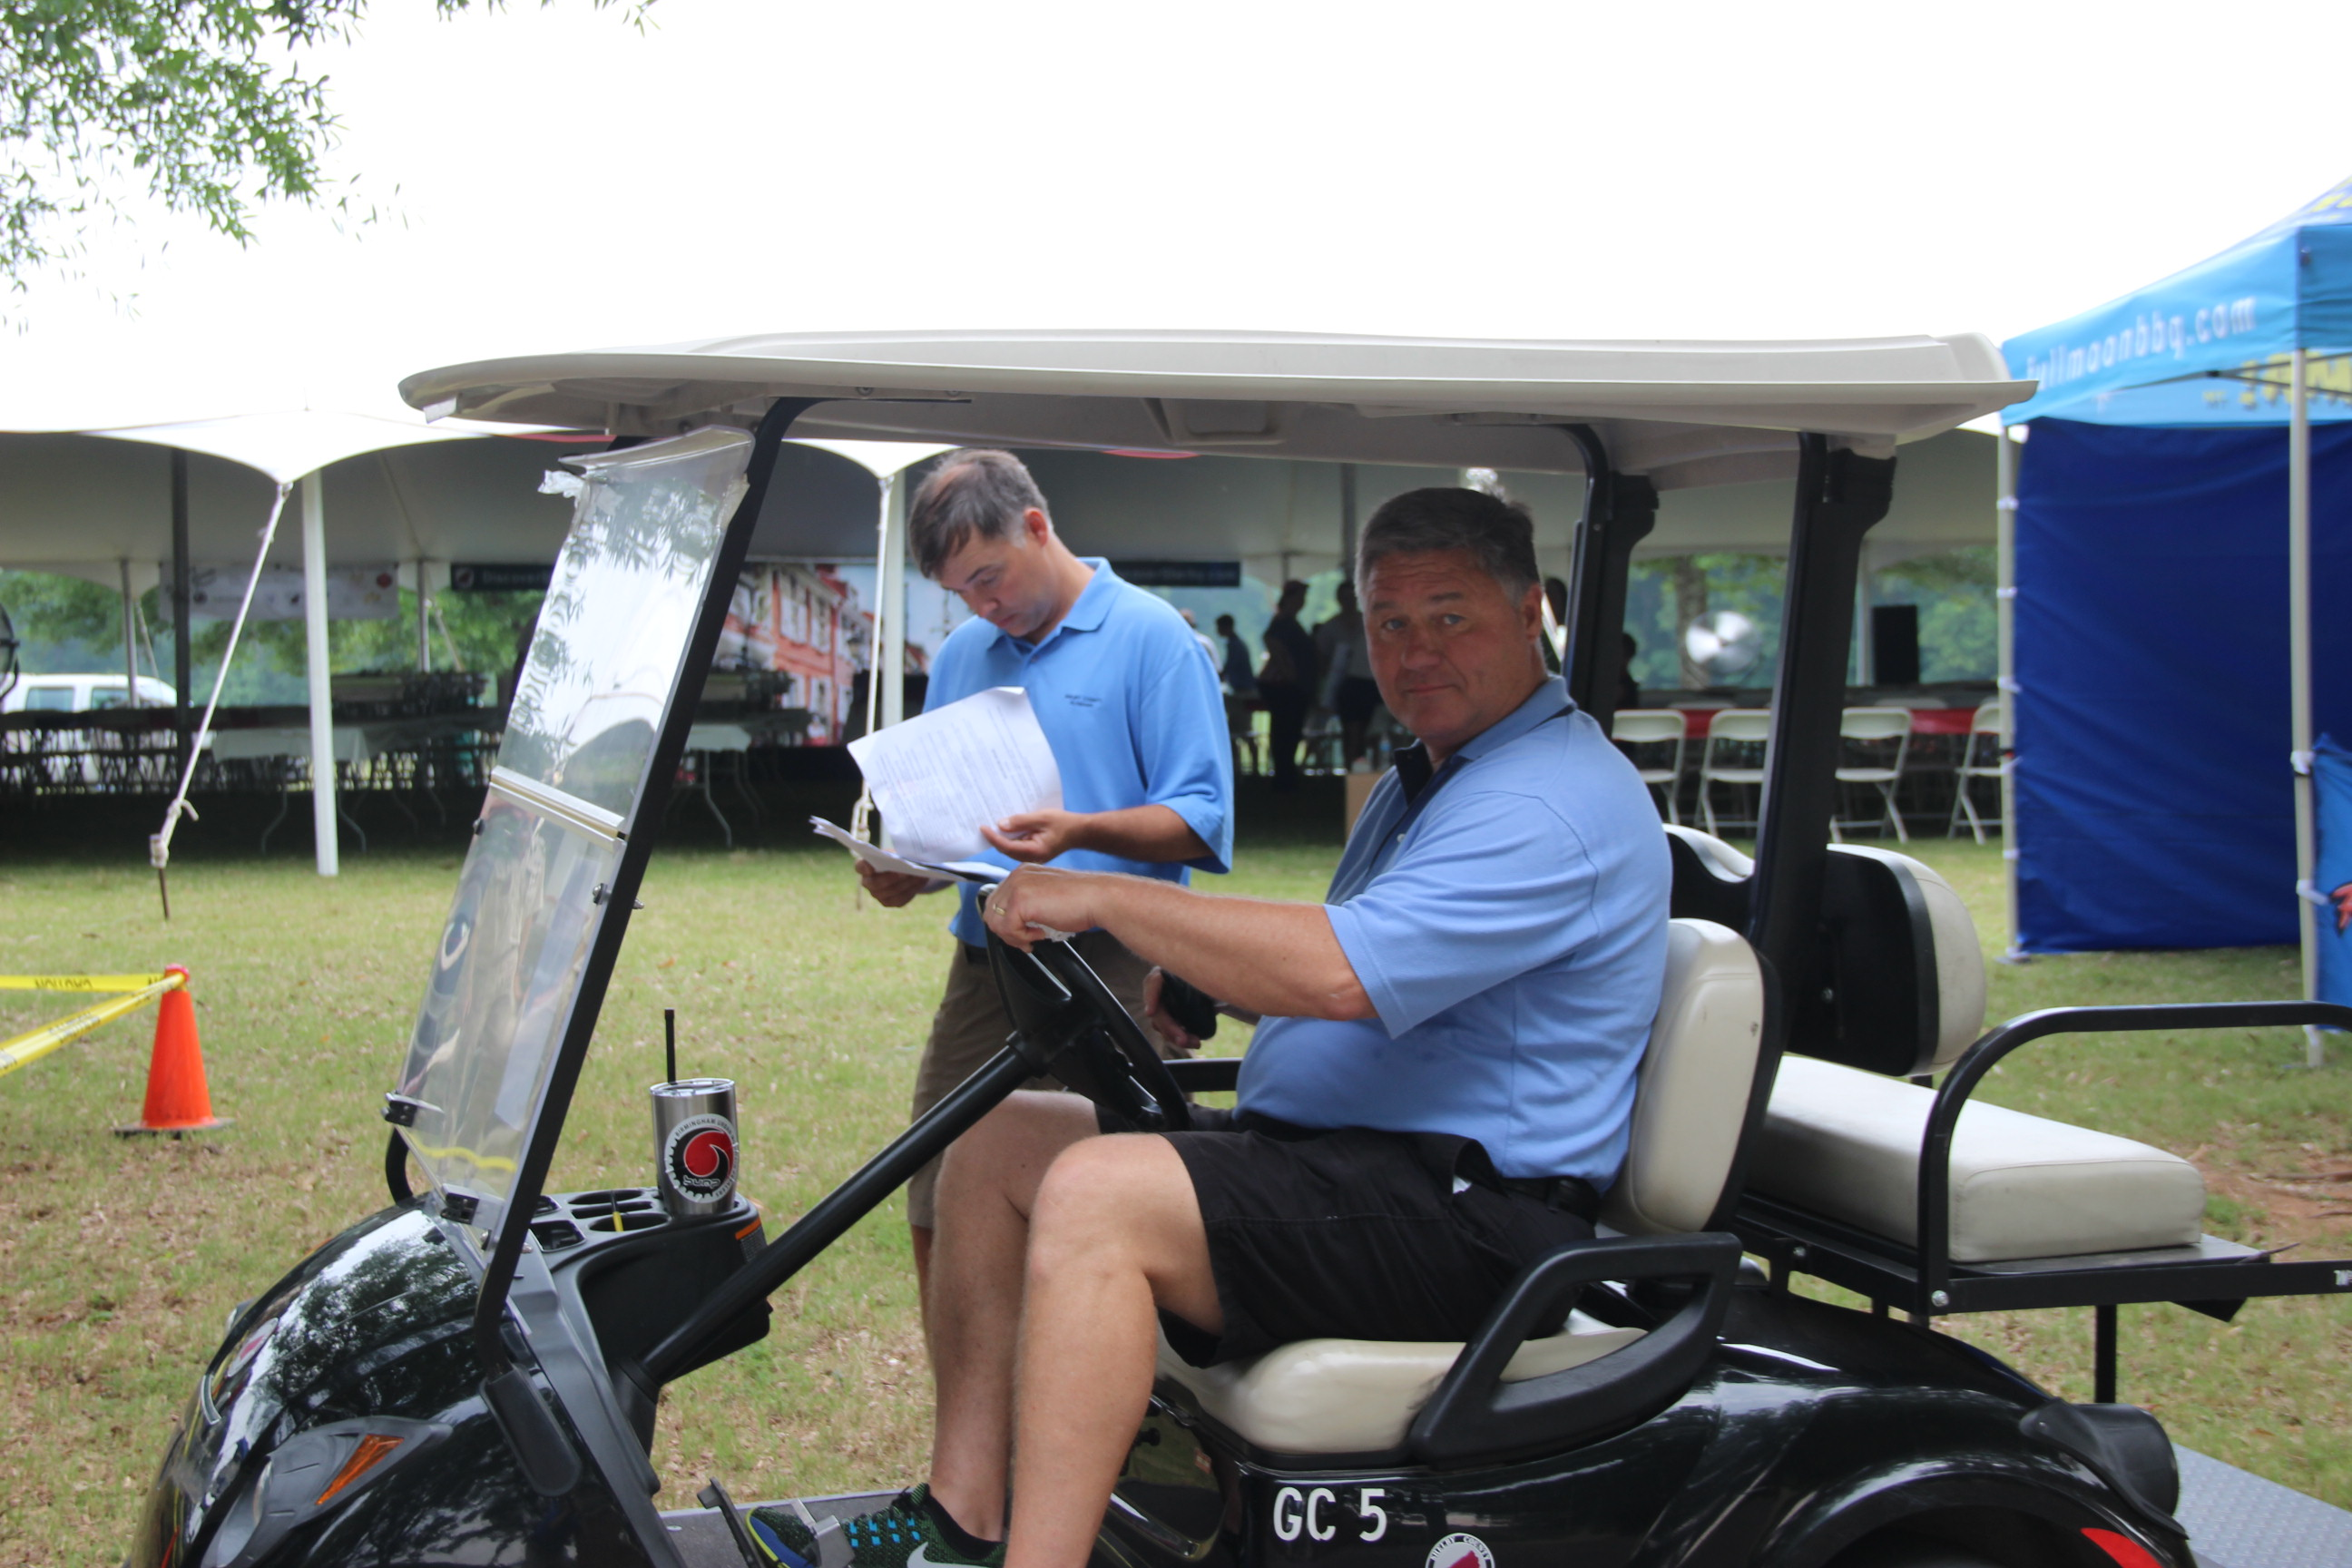 Image of the County Manager Alex Dudchock in golf cart